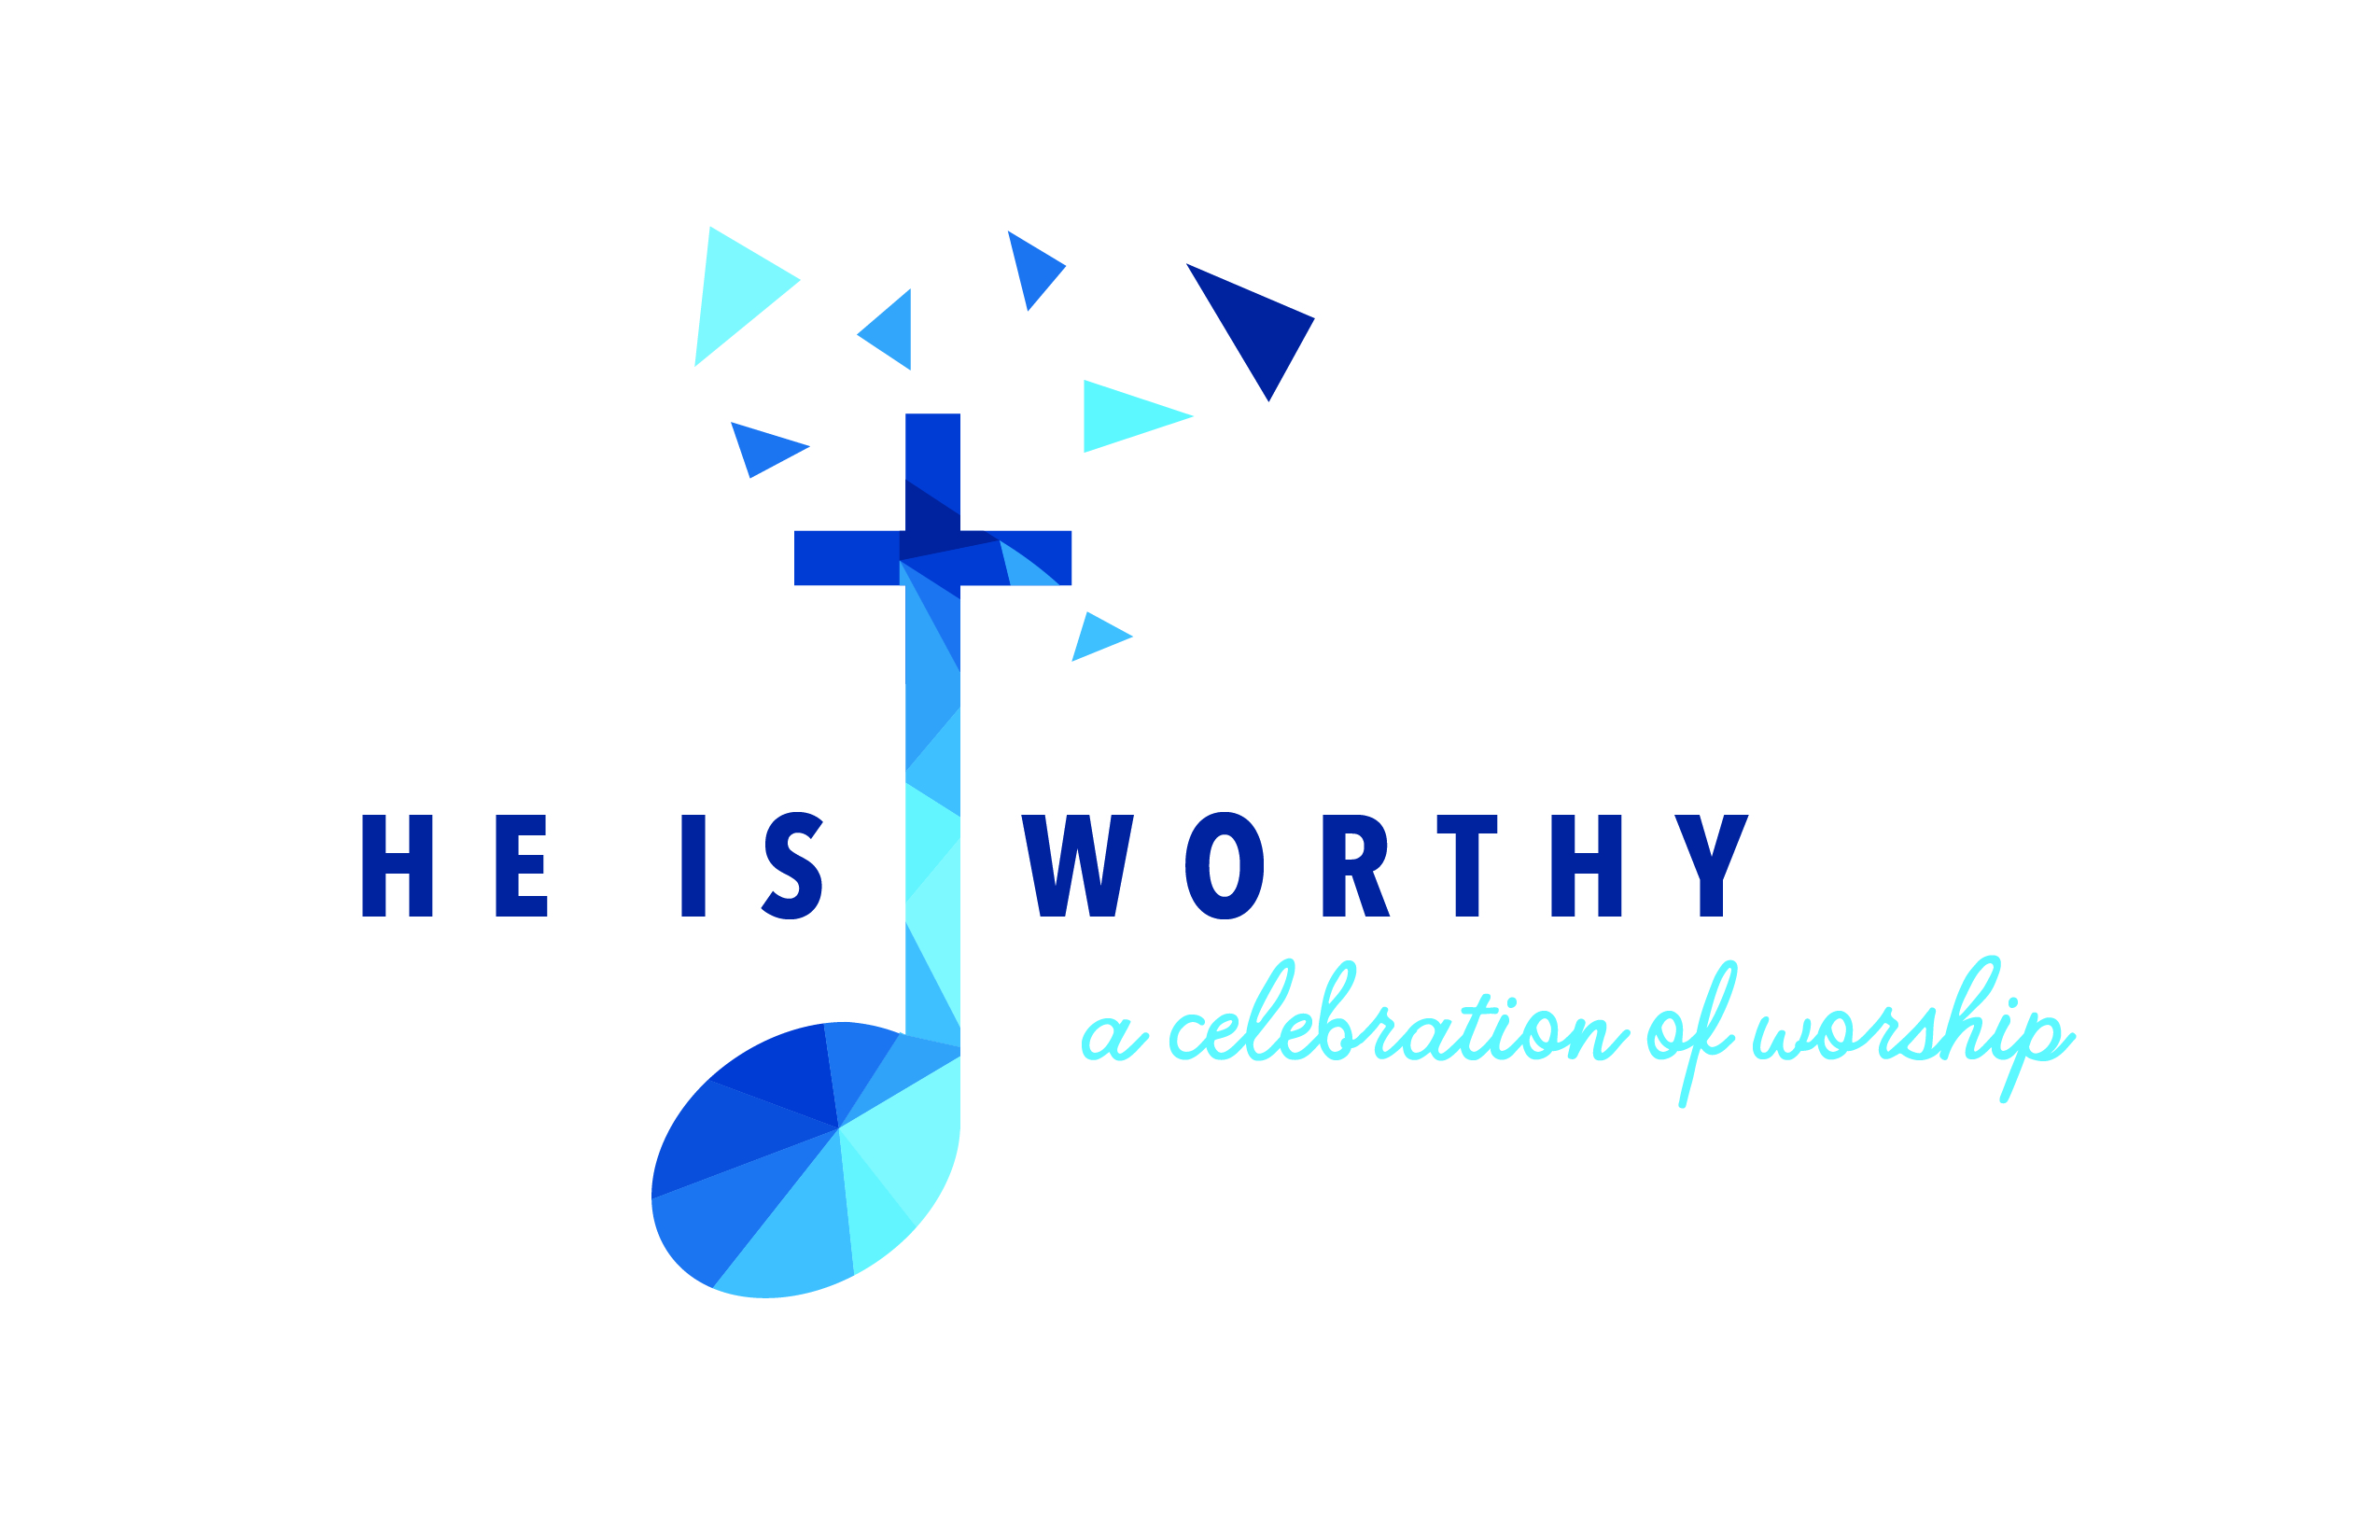 November 17 Celebration of Worship